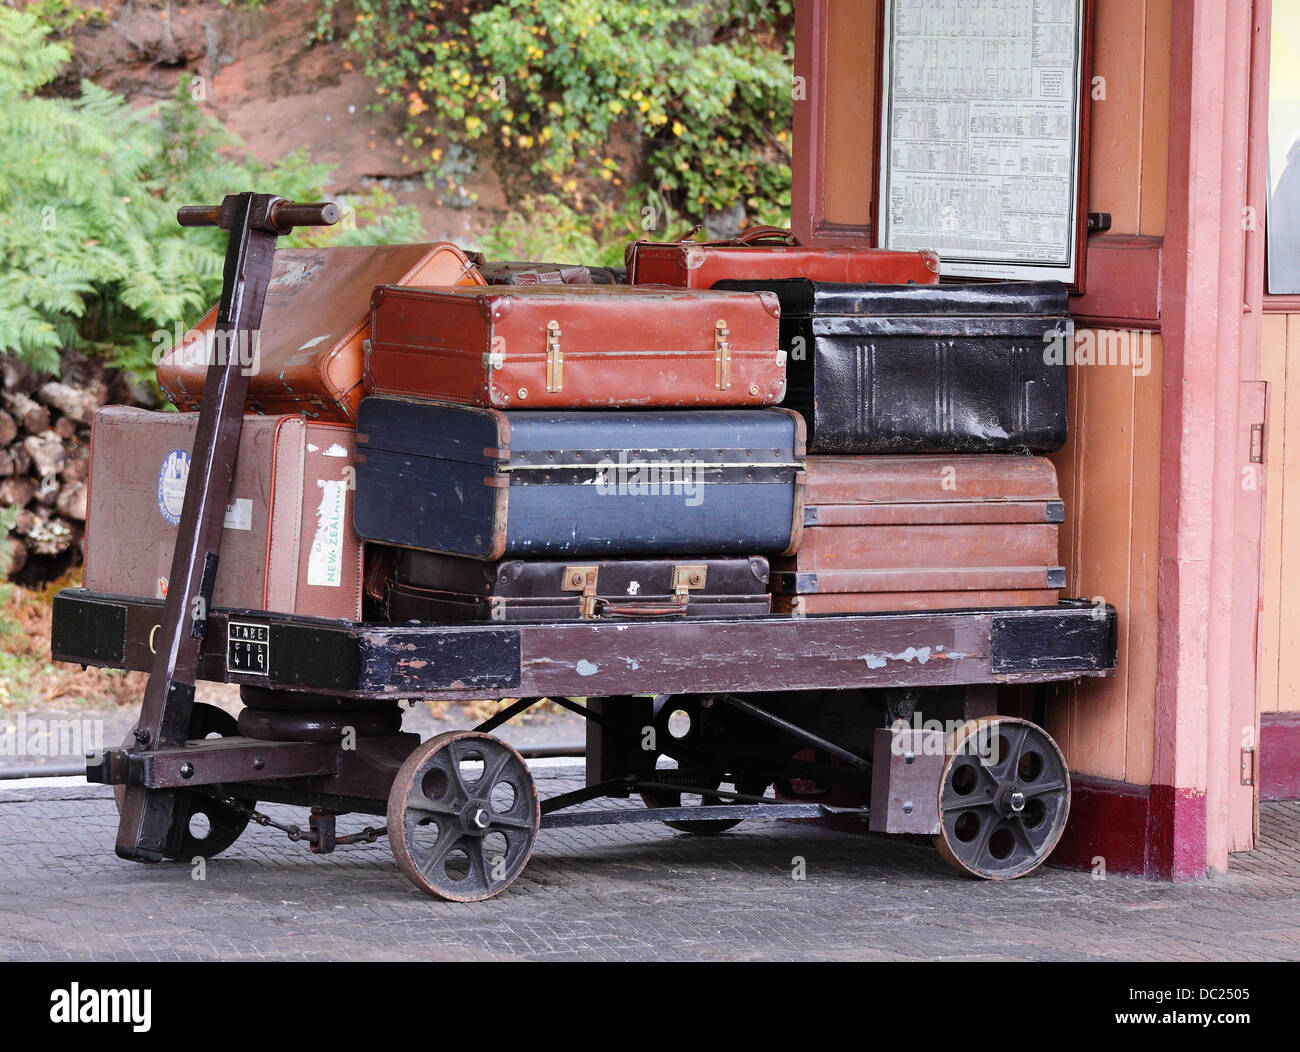 Trolley loaded with vintage baggage on a Station platform - Stock Image